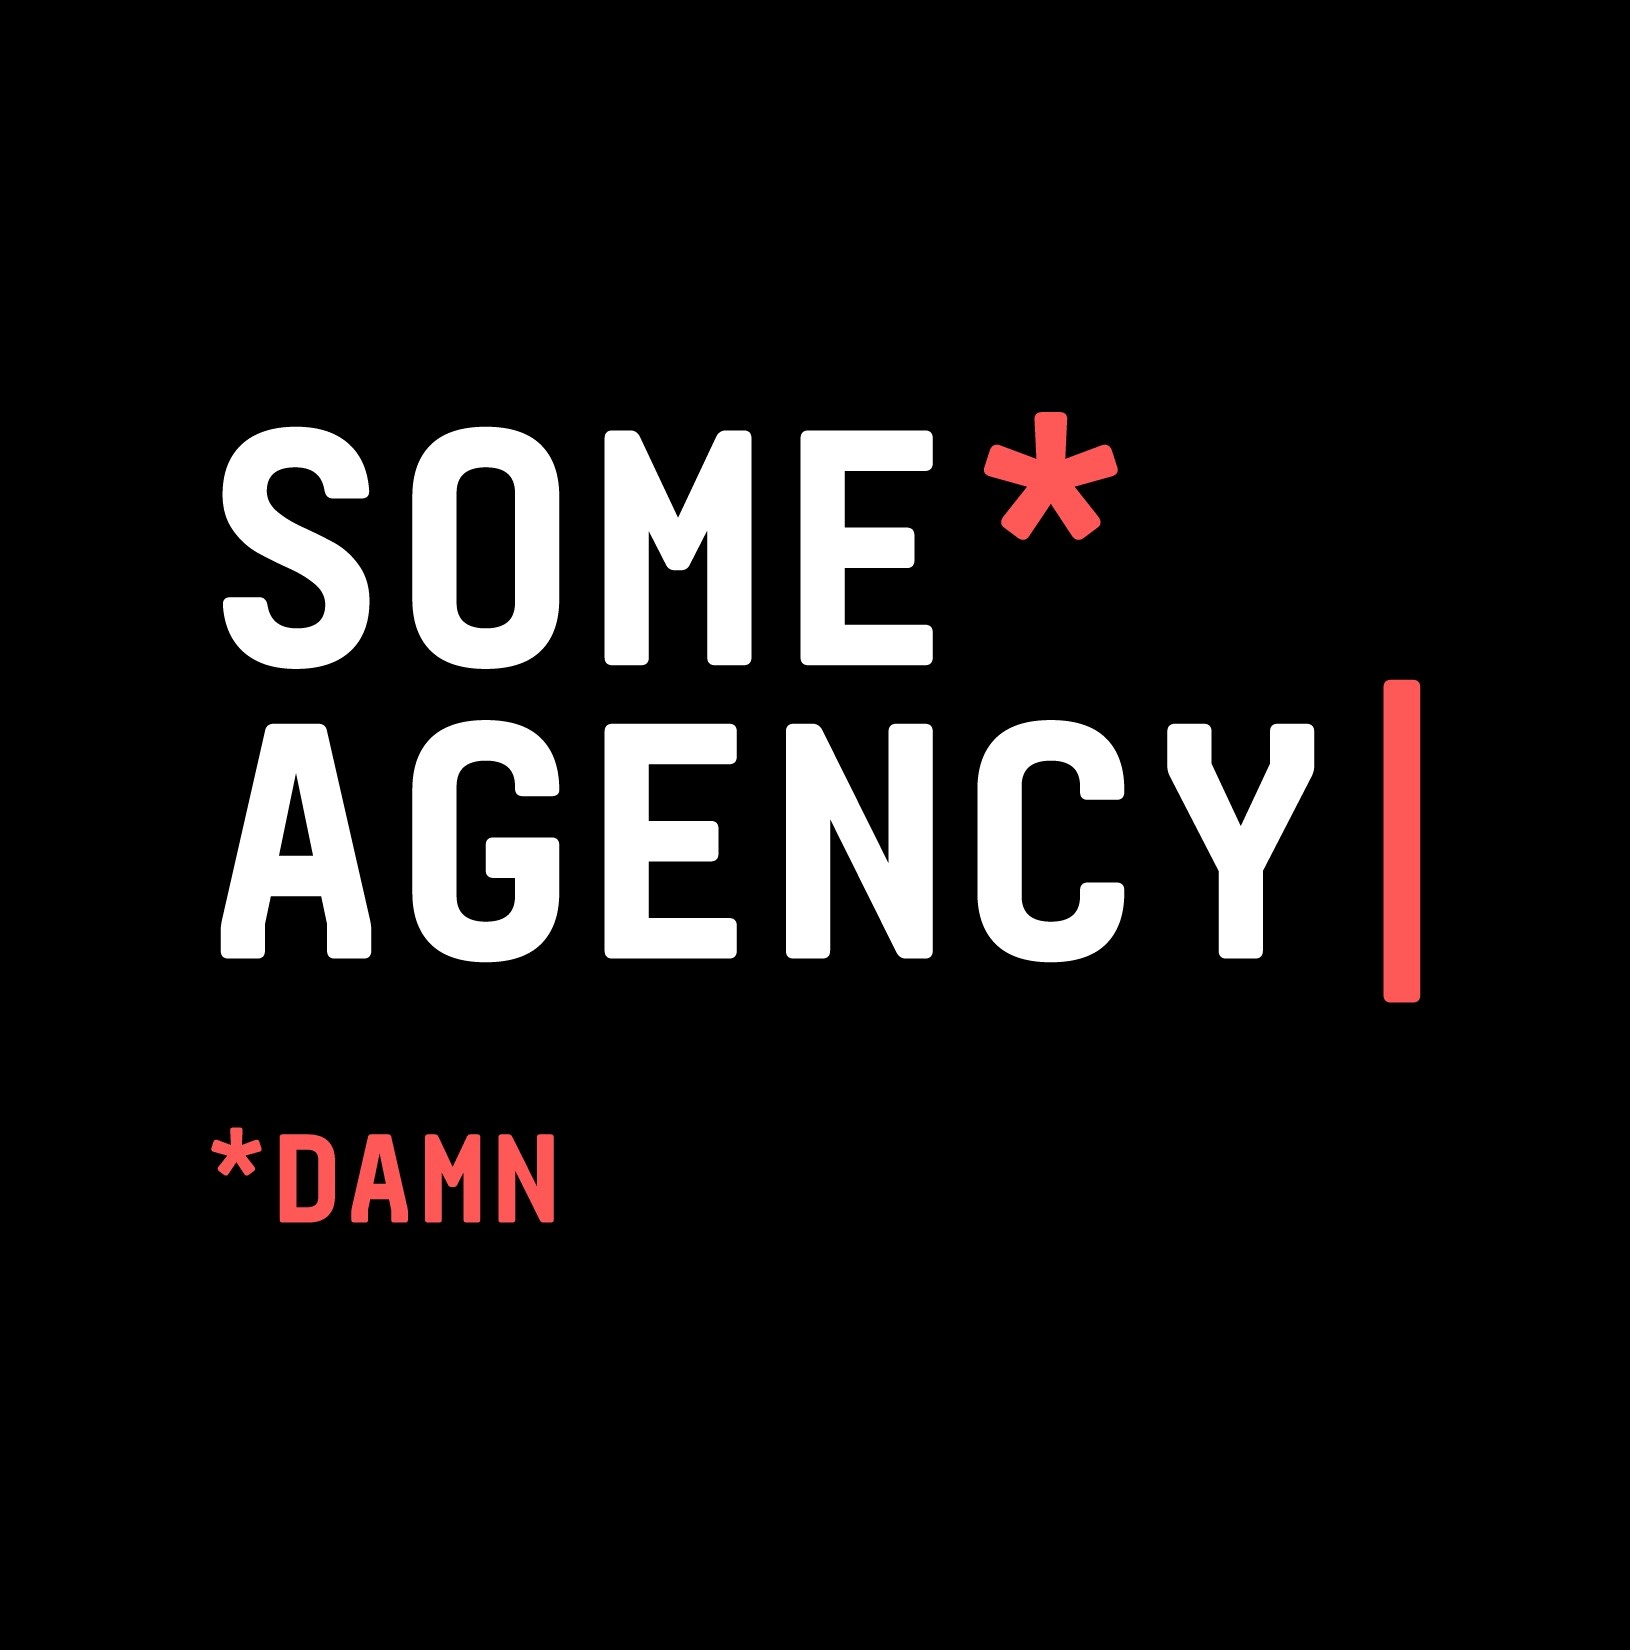 Mihisara De Waas and Jyotsna Poosalingam launch 'SOME DAMN AGENCY' in New Zealand